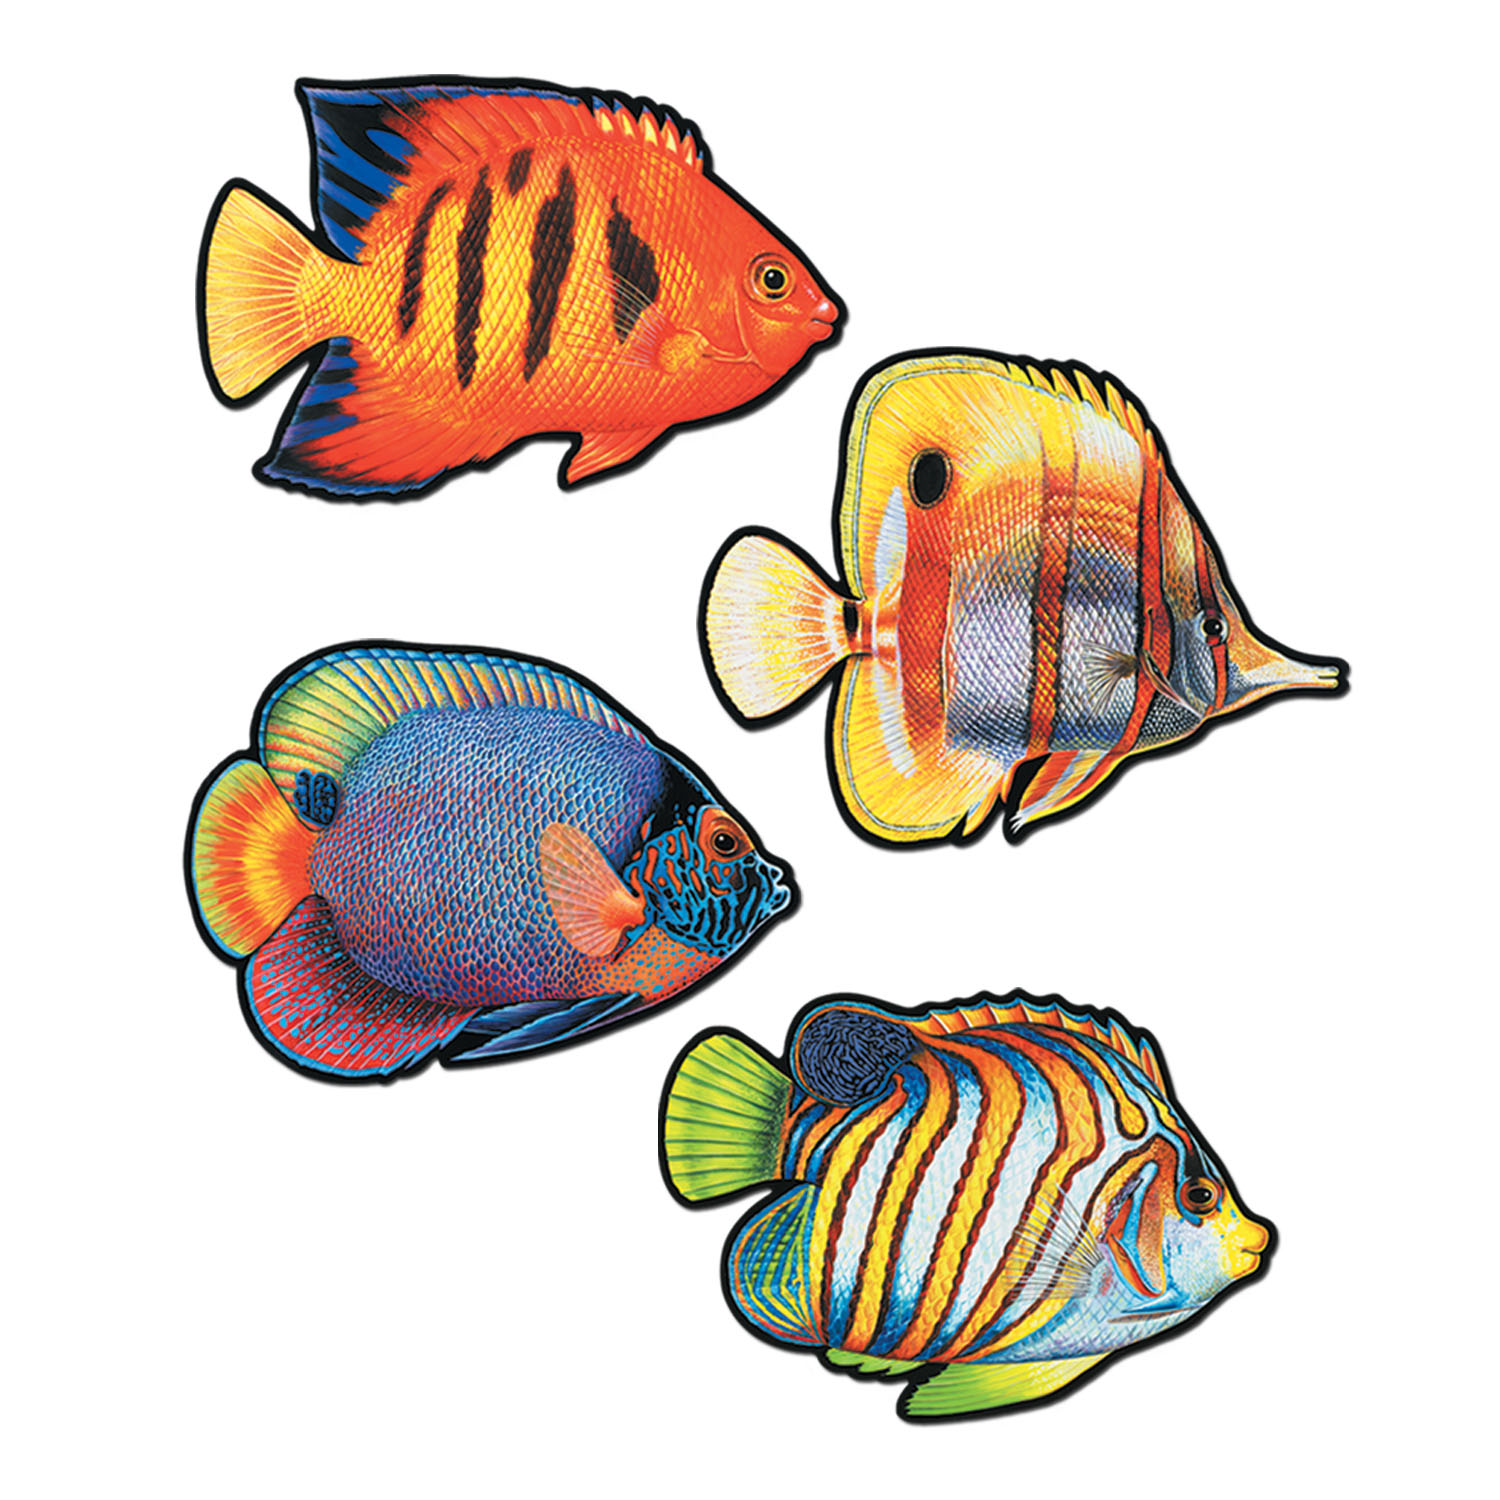 Coral Reef Fish Cutouts (Pack of 48) Sea, Ocean, coral reef, tropical fish, fish, animals, luau, nautical